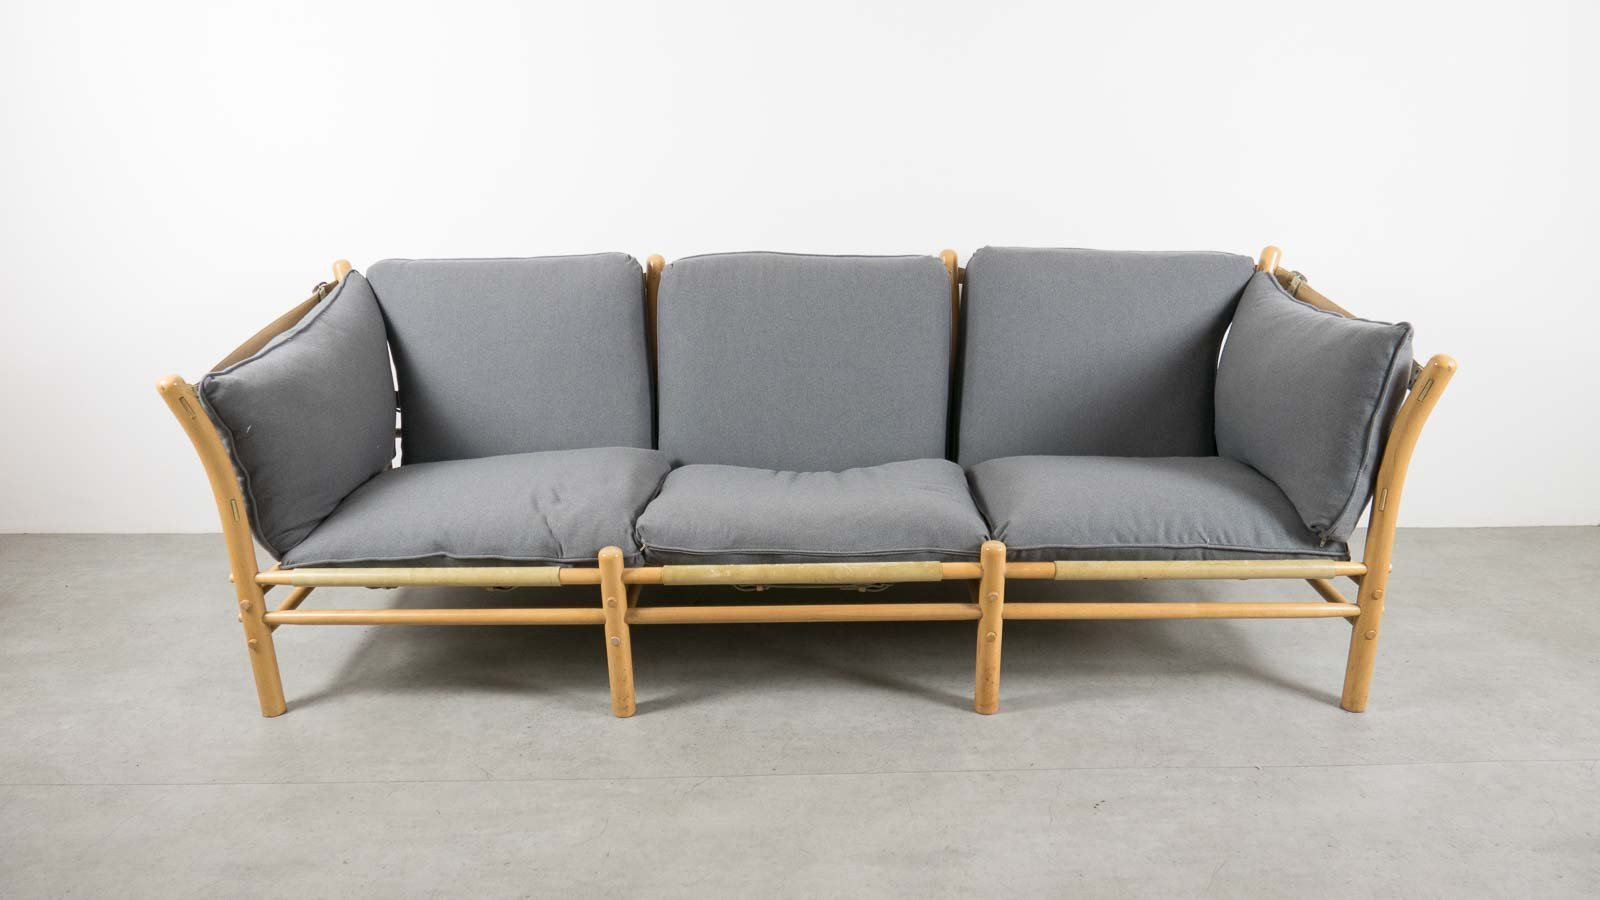 Vintage Ilona Sofa by Arne Norell for Aneby Mobler for sale at Pamono